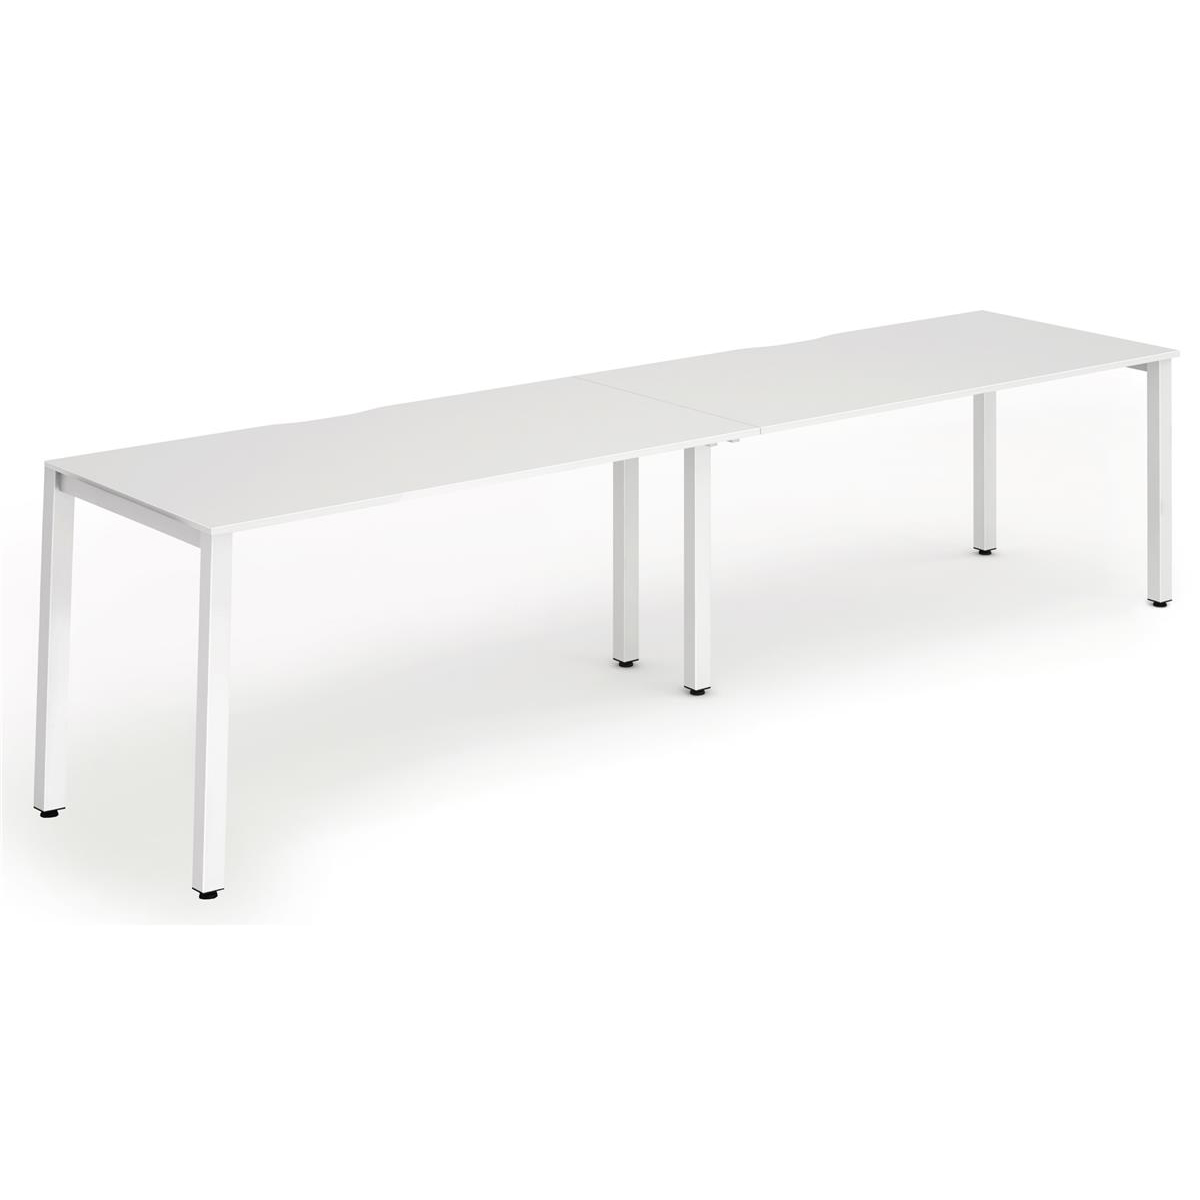 Trexus Bench Desk 2 Person Side to Side Configuration White Leg 2800x800mm White Ref BE355